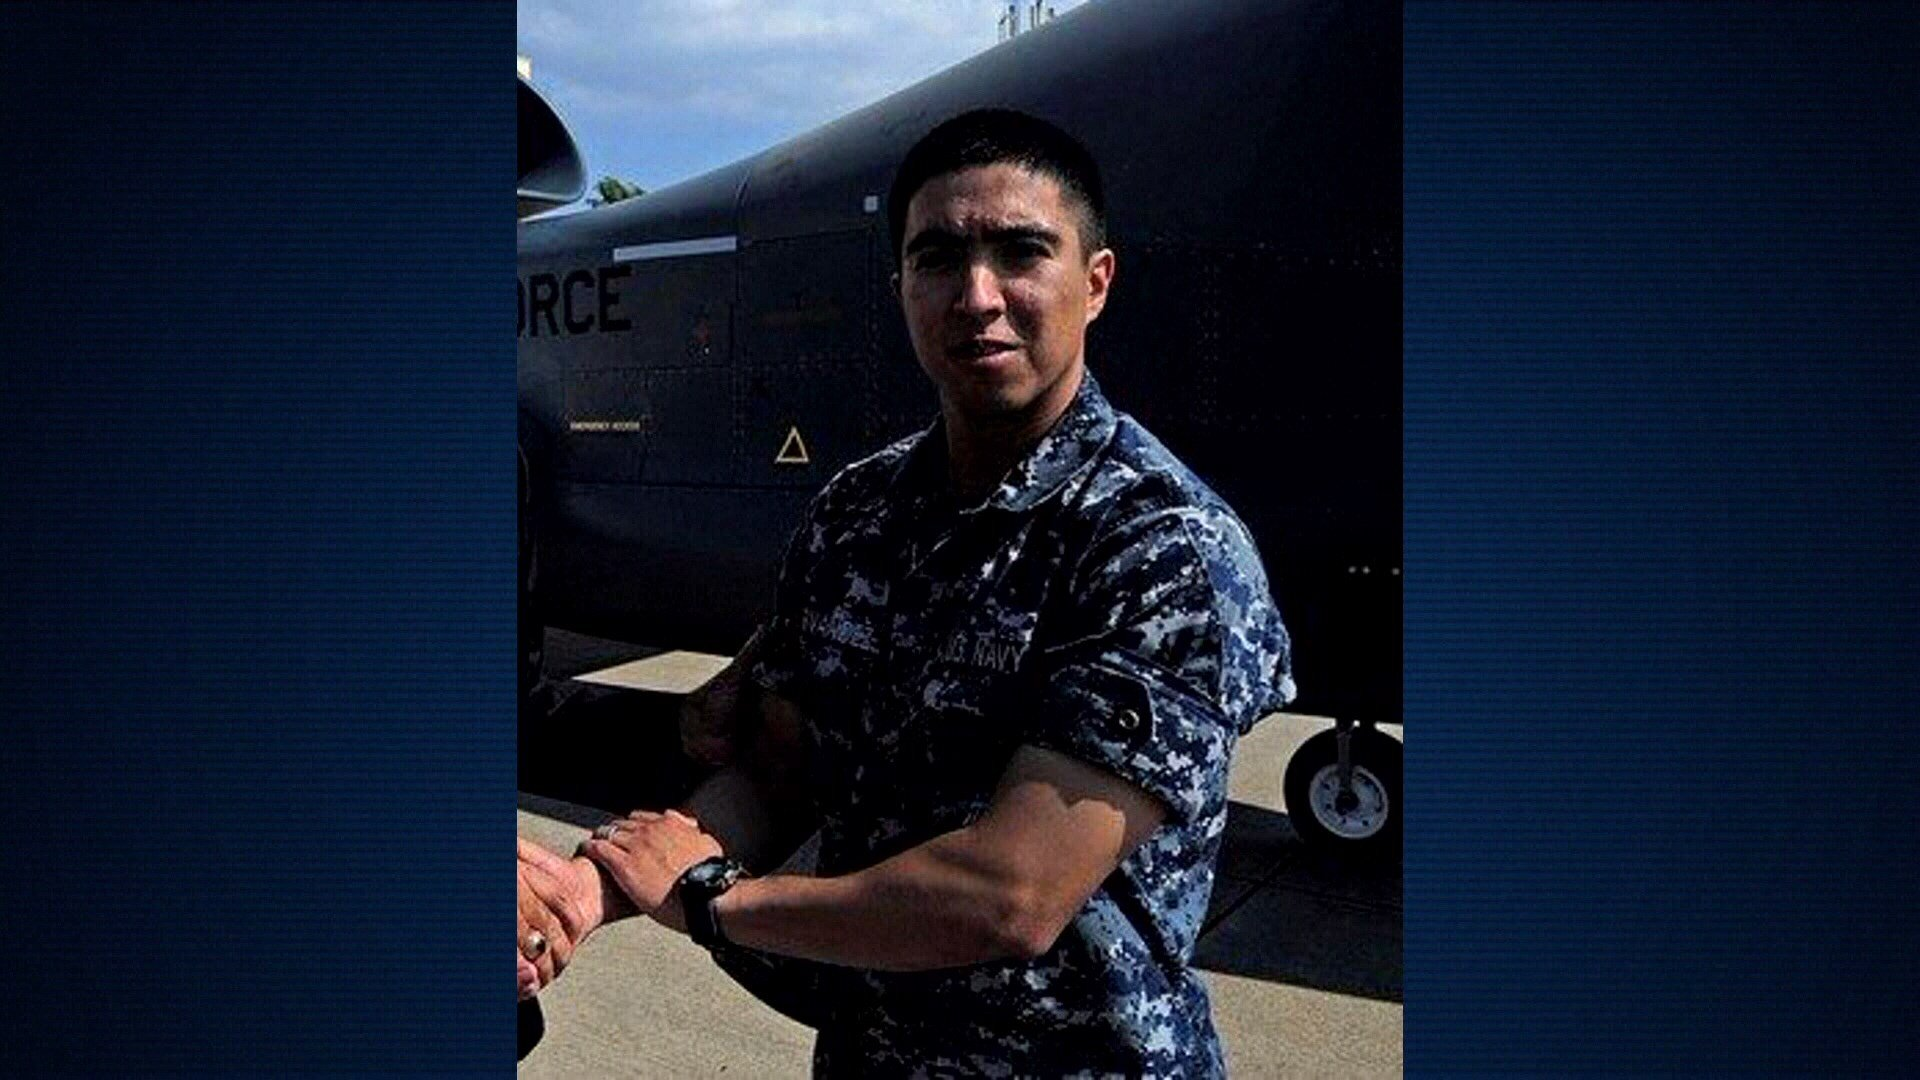 One of the victims of the USS Fitzgerald collision was Gunner's Mate 2nd Class Noe Hernandez, 26, from South Texas.